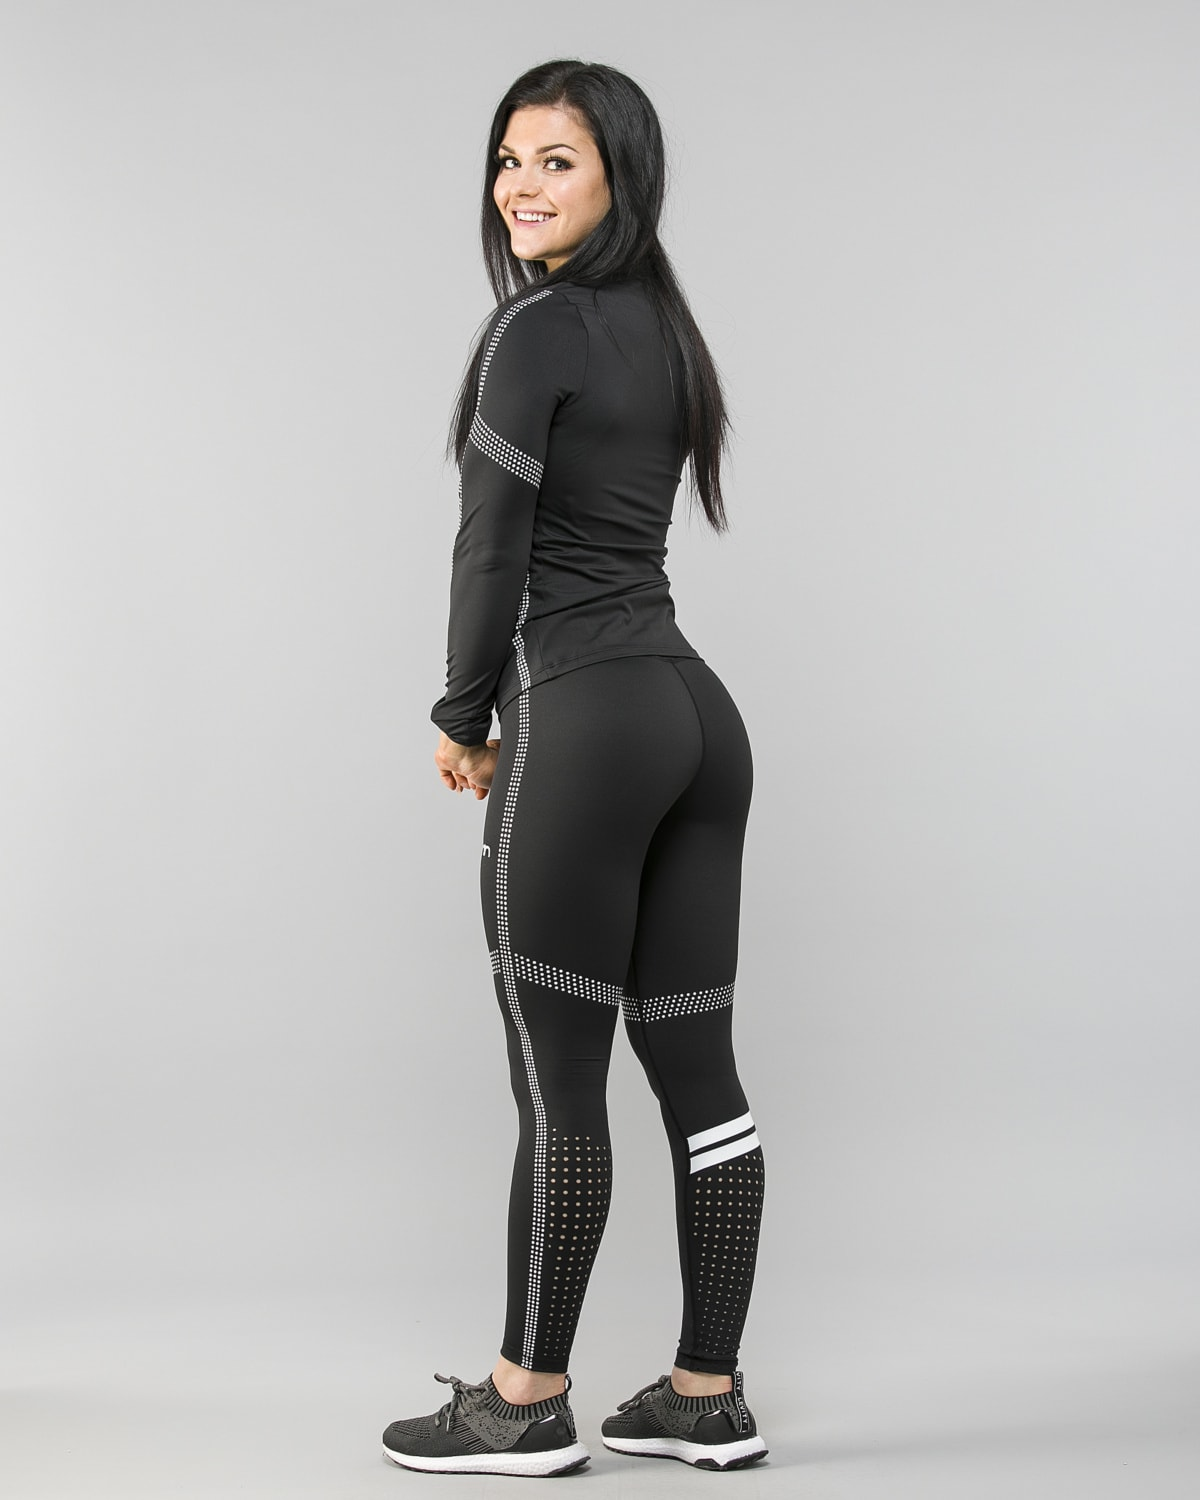 Aim'n Vision Long Sleeve and Tights e